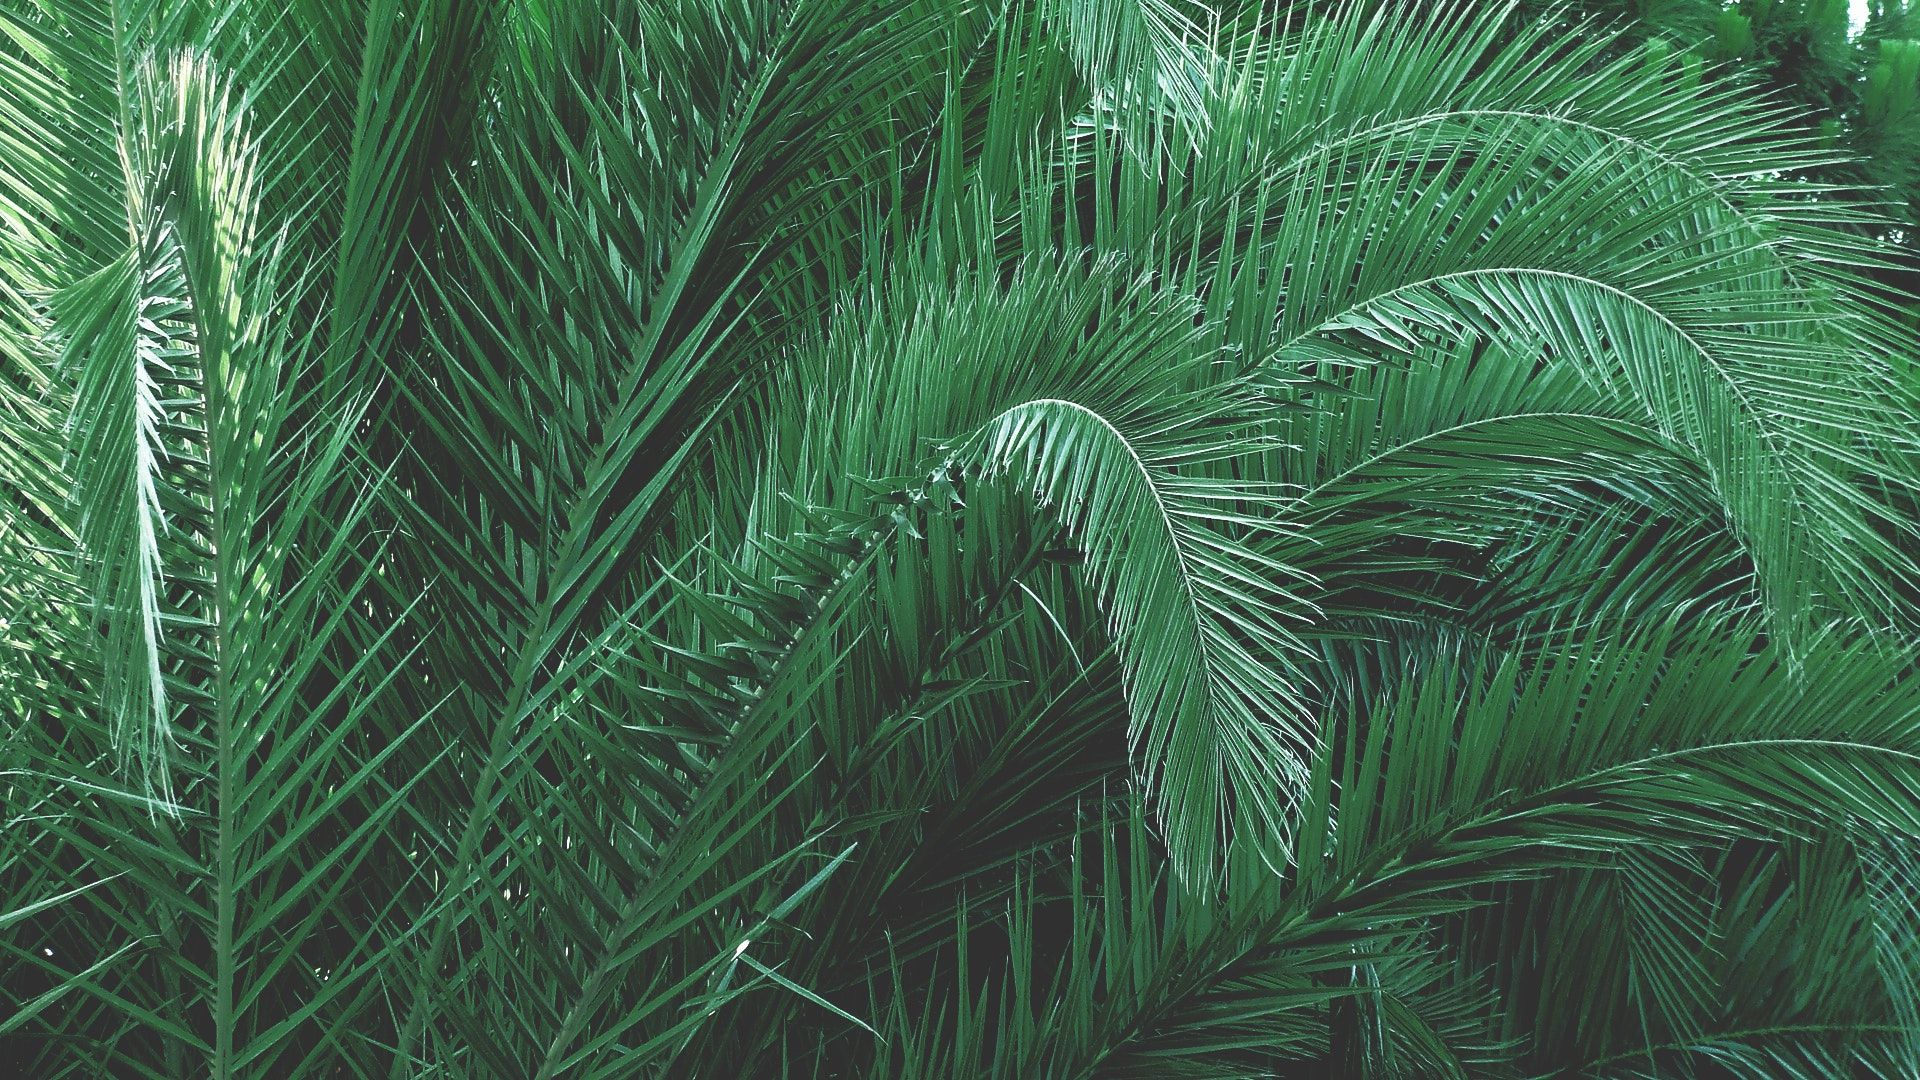 Plants Aesthetic PC Wallpapers   Top Plants Aesthetic PC 1920x1080